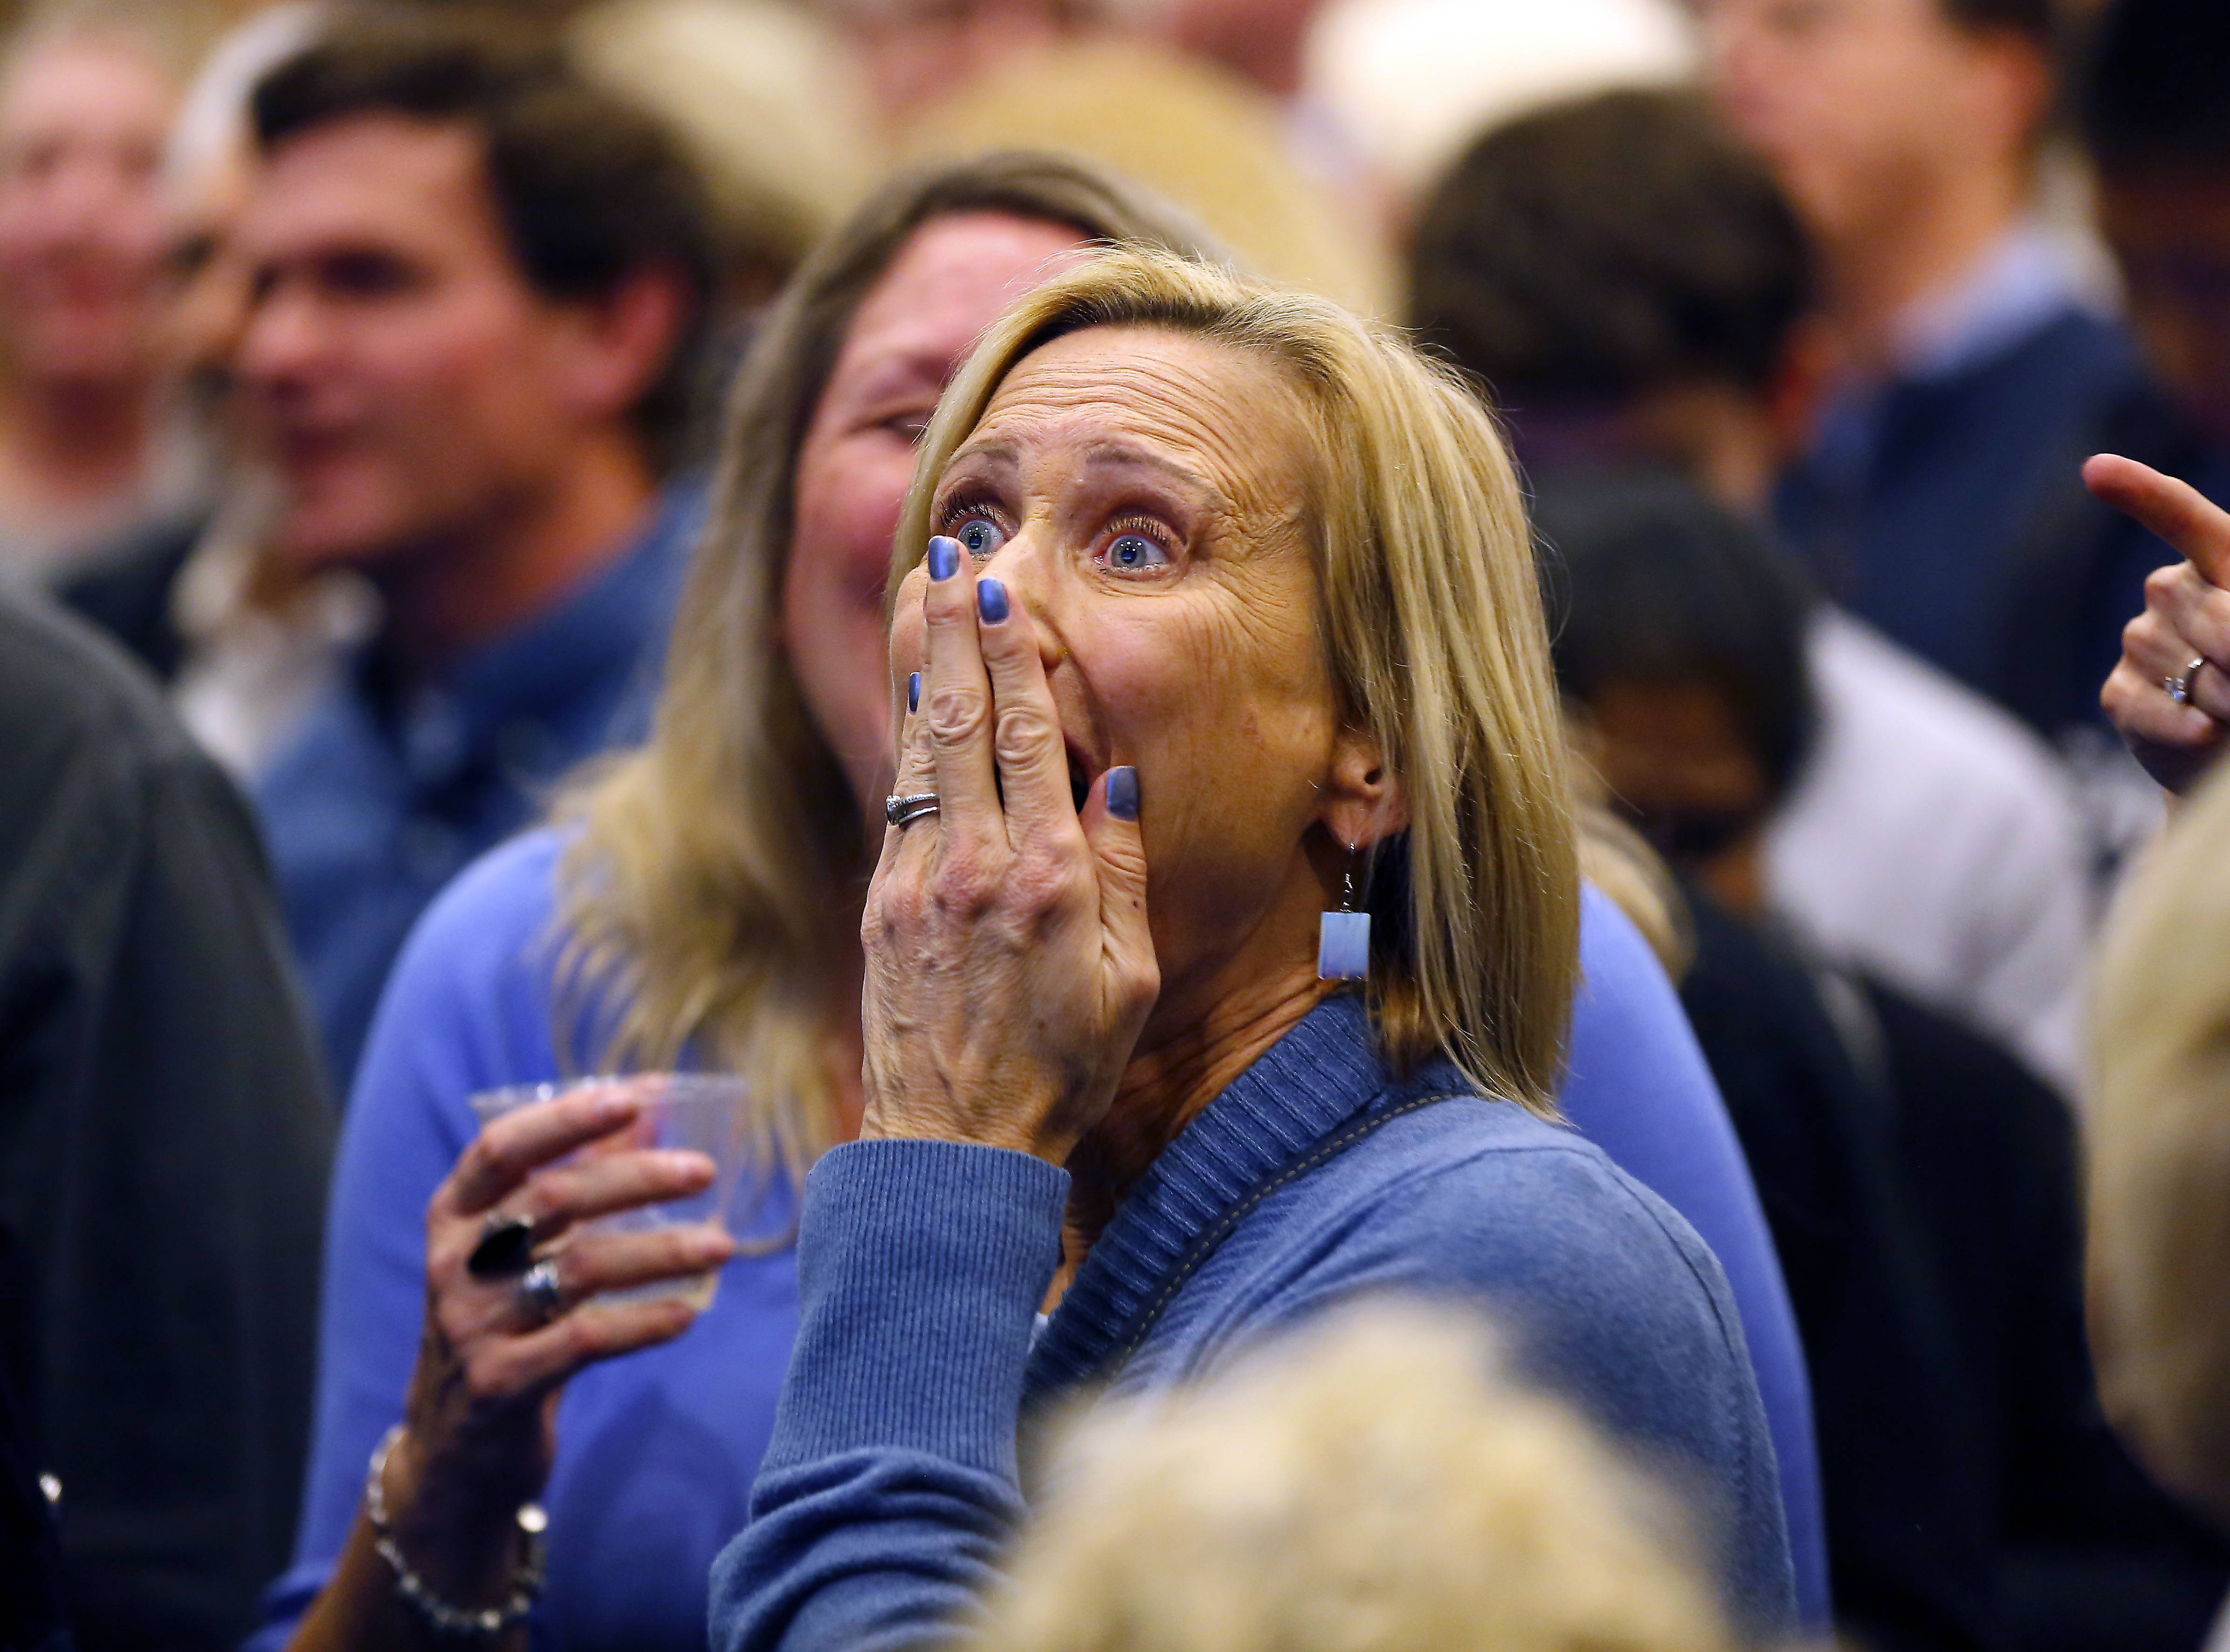 Anita Ehlers of Barrington reacts Tuesday after learning Democrat Sean Casten beat incumbent Republican Rep. Peter Roskam in a tight race for the 6th U.S. Congressional District.